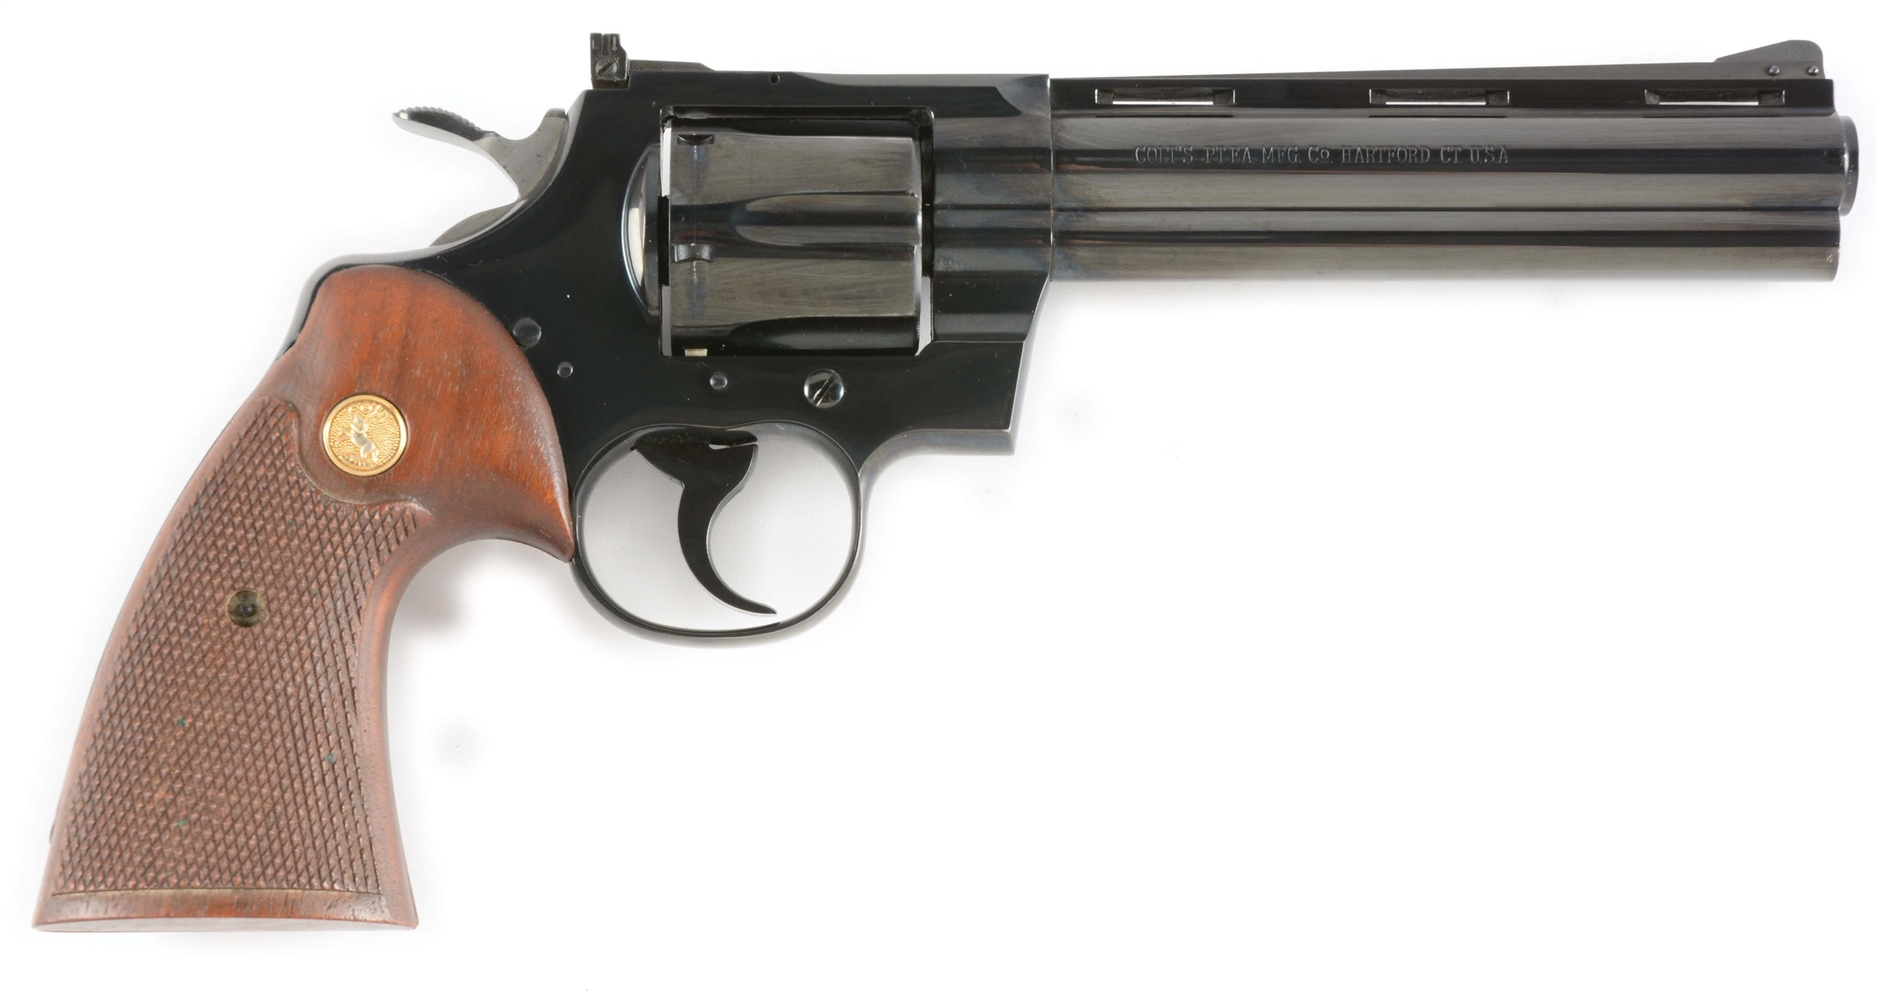 (C) Early High Condition Colt Python Double Action Revolver (1962).